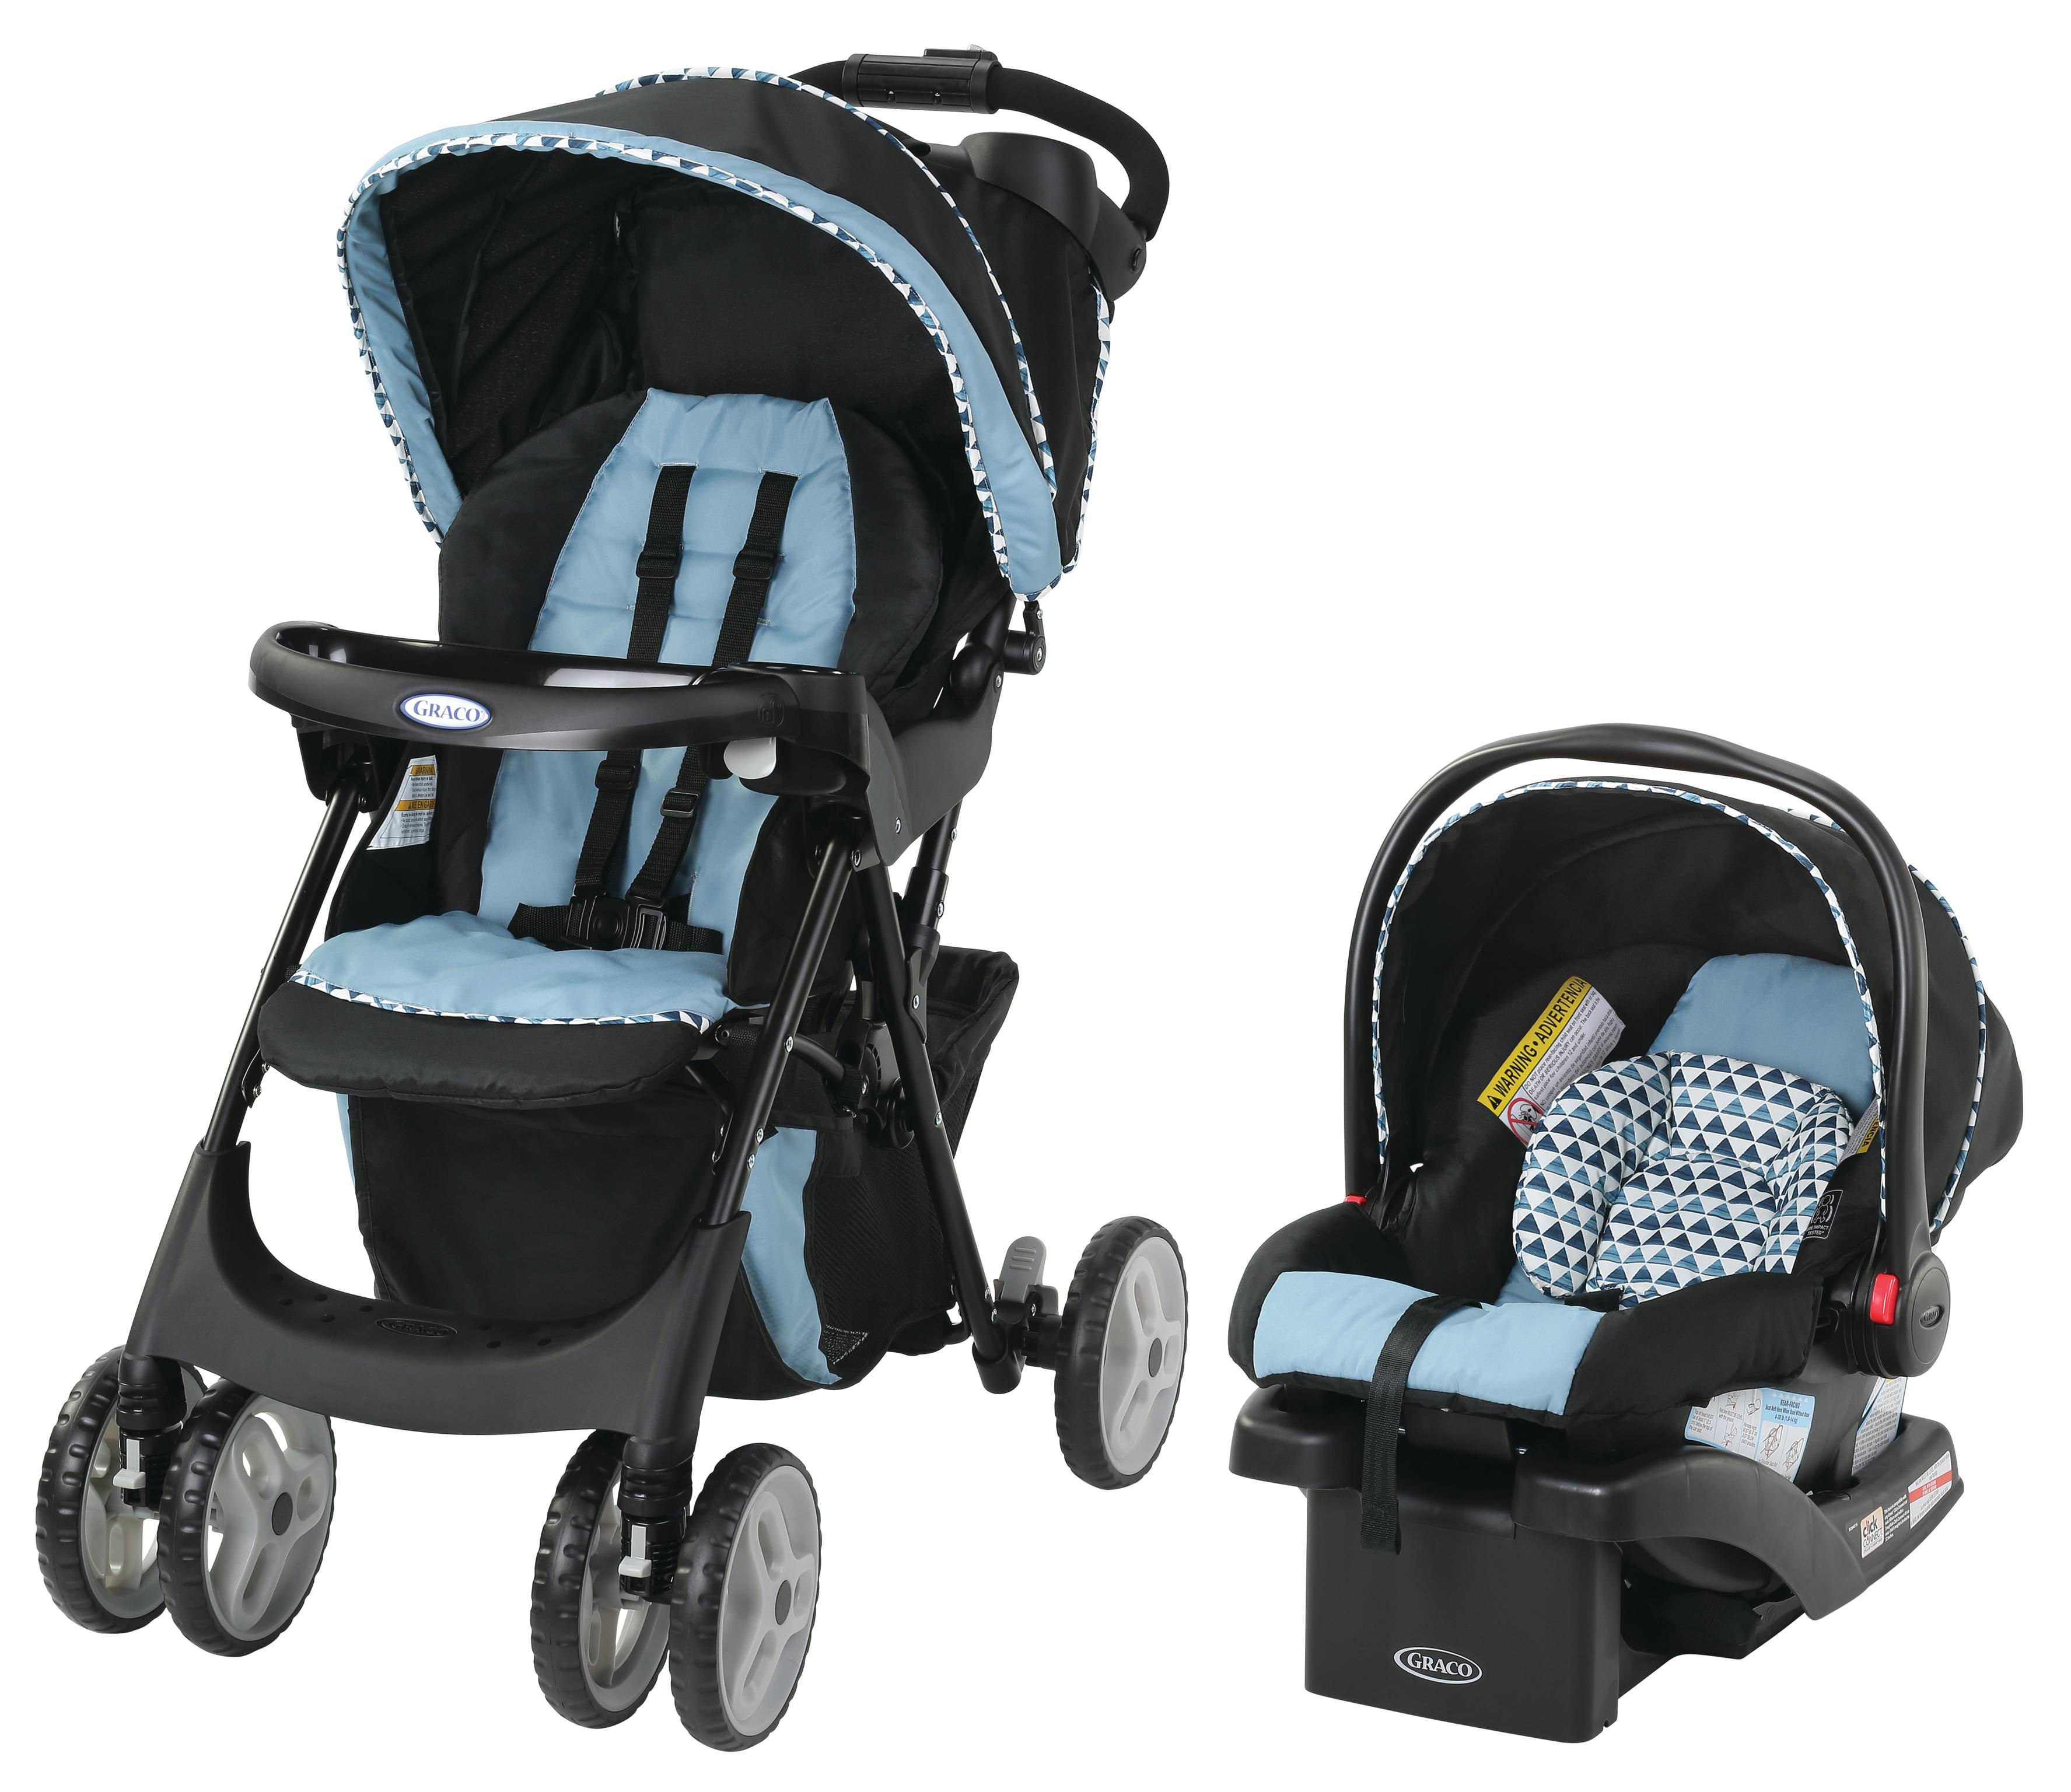 Graco Comfy Cruiser Click Connect Travel System, Jax by Graco